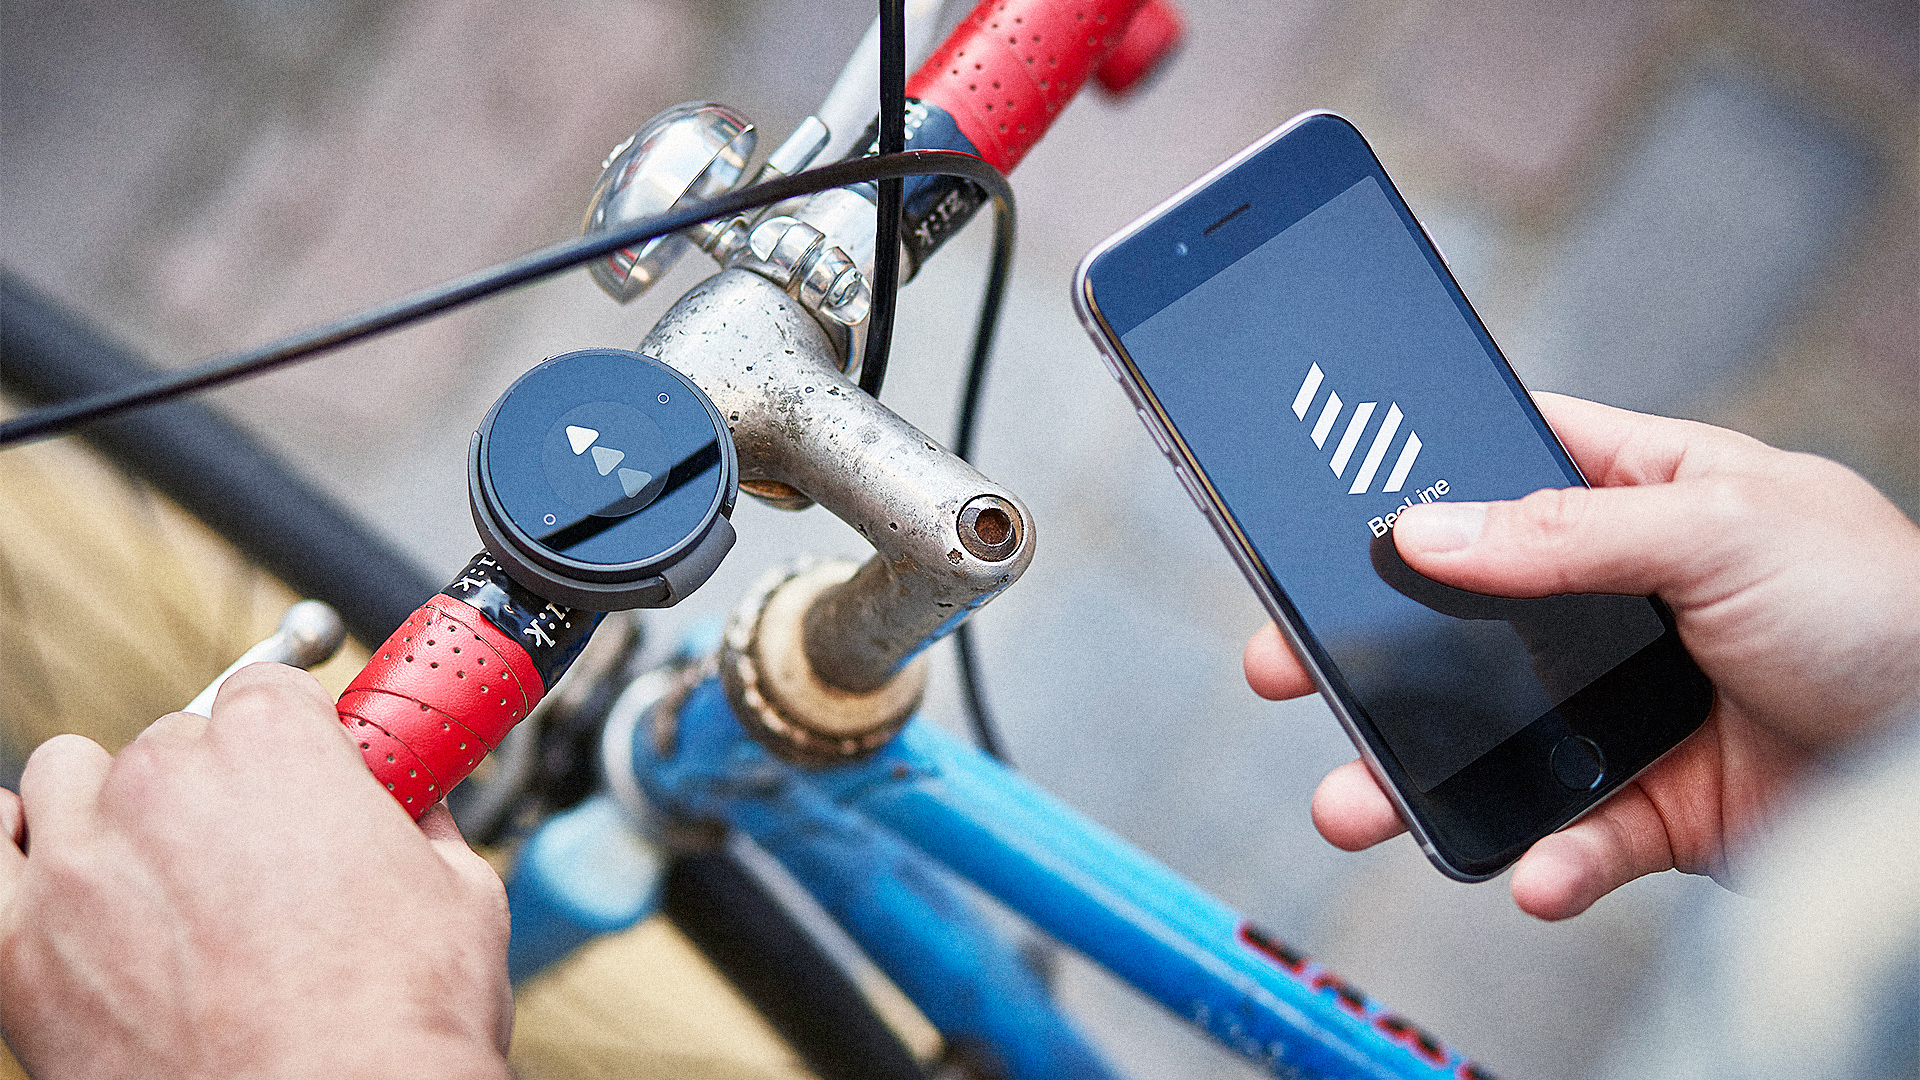 This Smart Bike Navigation System Brings Back The Joy Of Riding Unexplored Routes